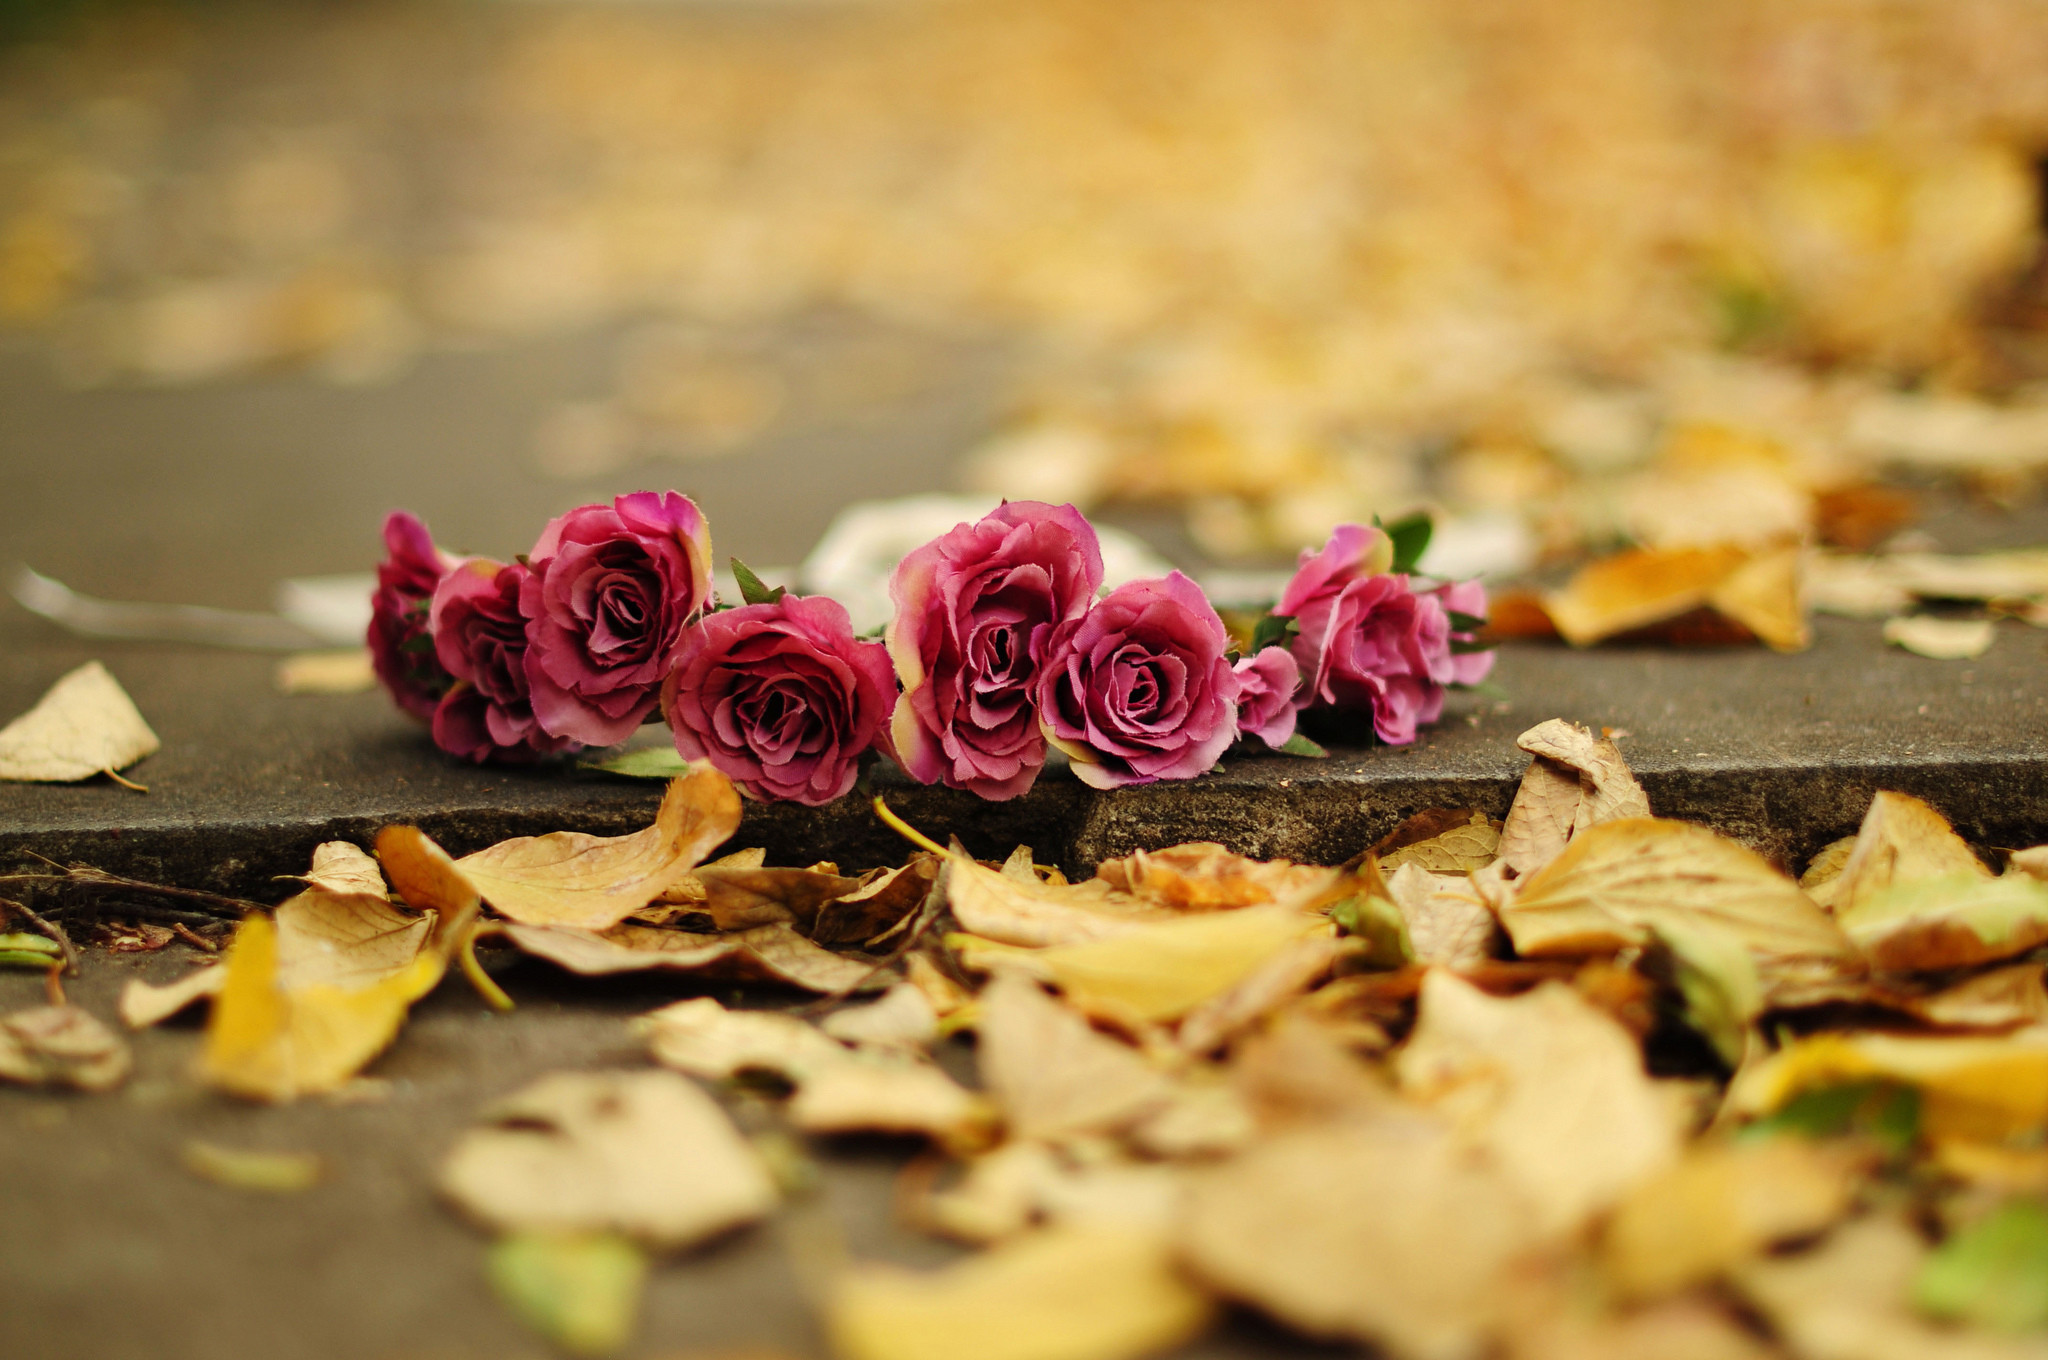 Fall Flowers Wallpaper (49+ images)